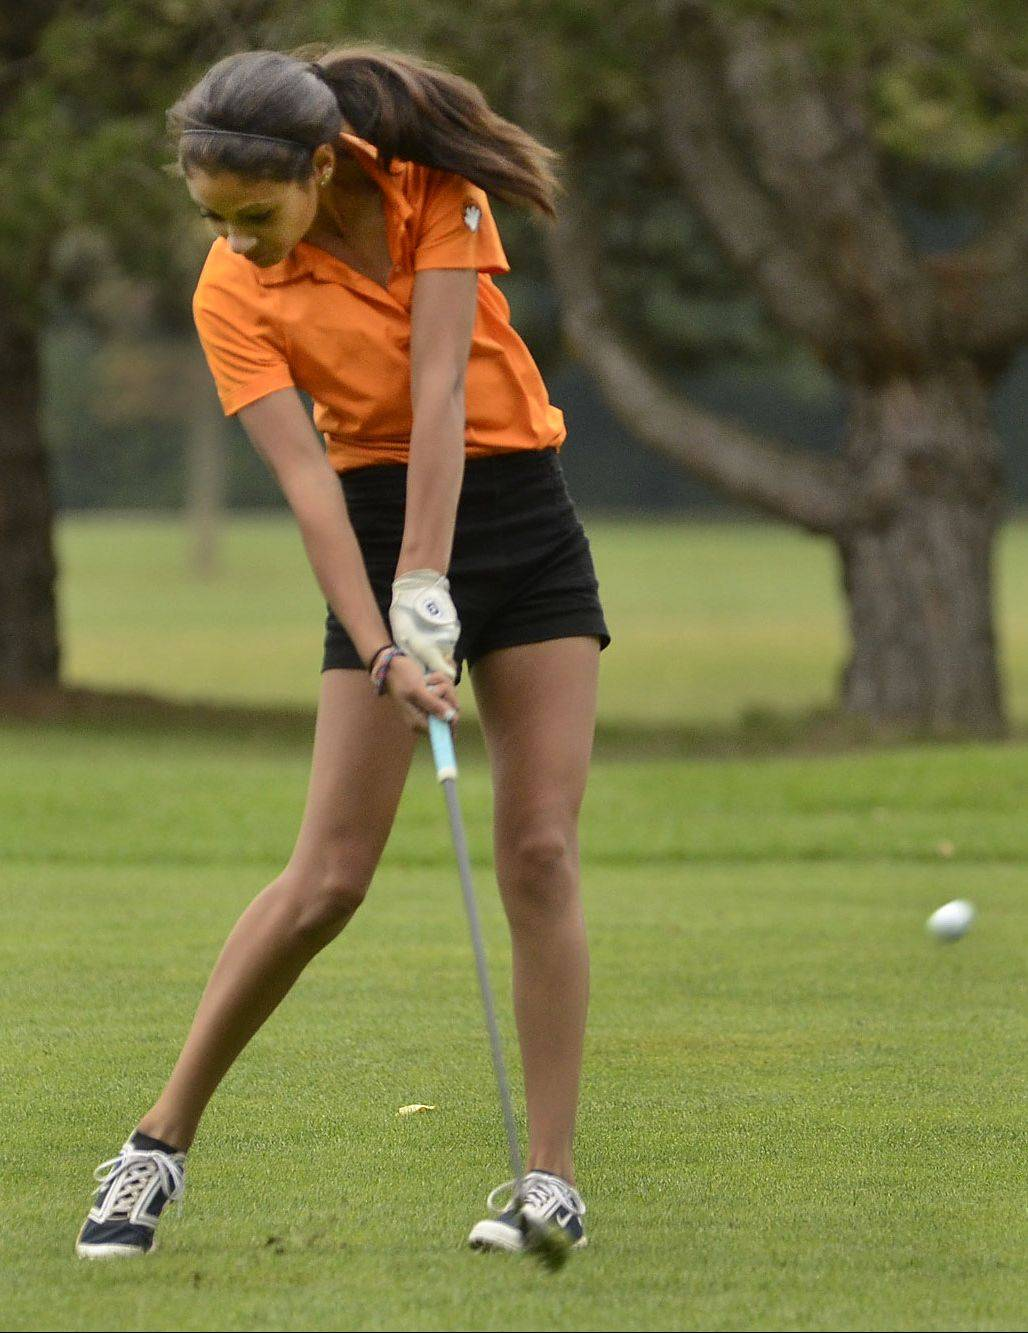 Libertyville's Simone Mikaelian hits on the 10th fairway during the North Suburban Conference girls golf meet at Deerpath Golf Course in Lake Forest.